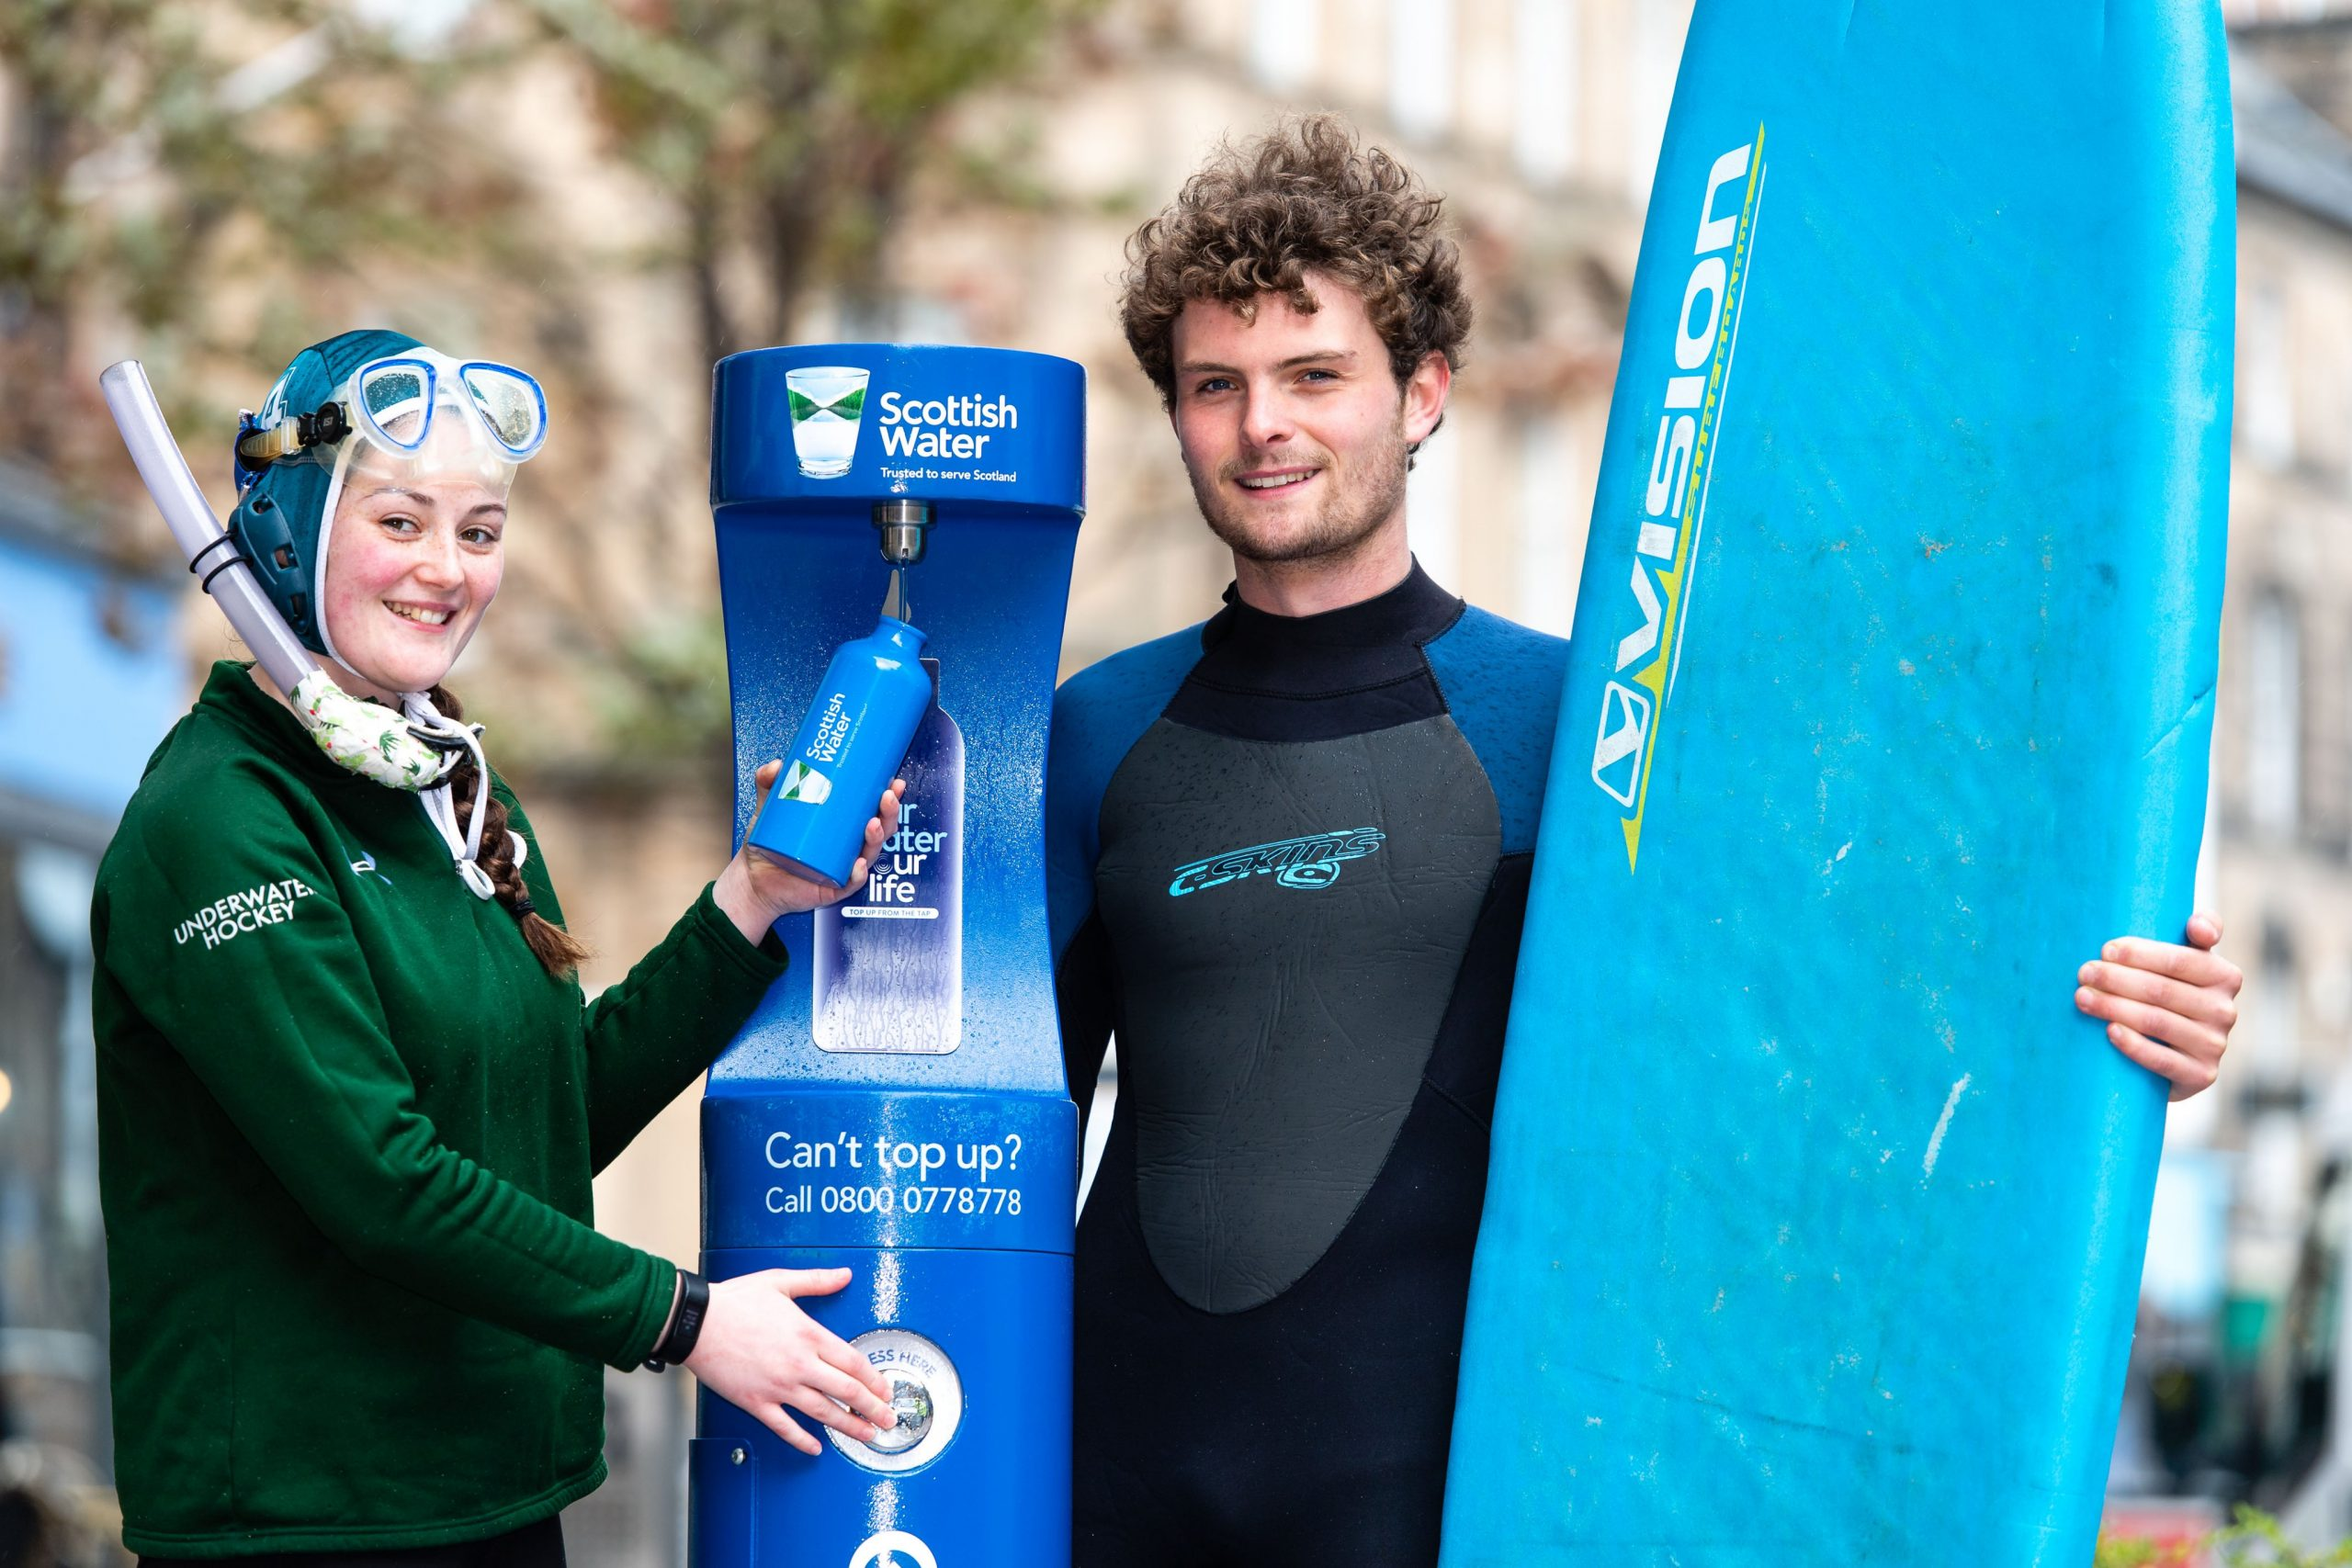 Members of University of Stirling's Surf Club with the new Scottish Water drinking fountain